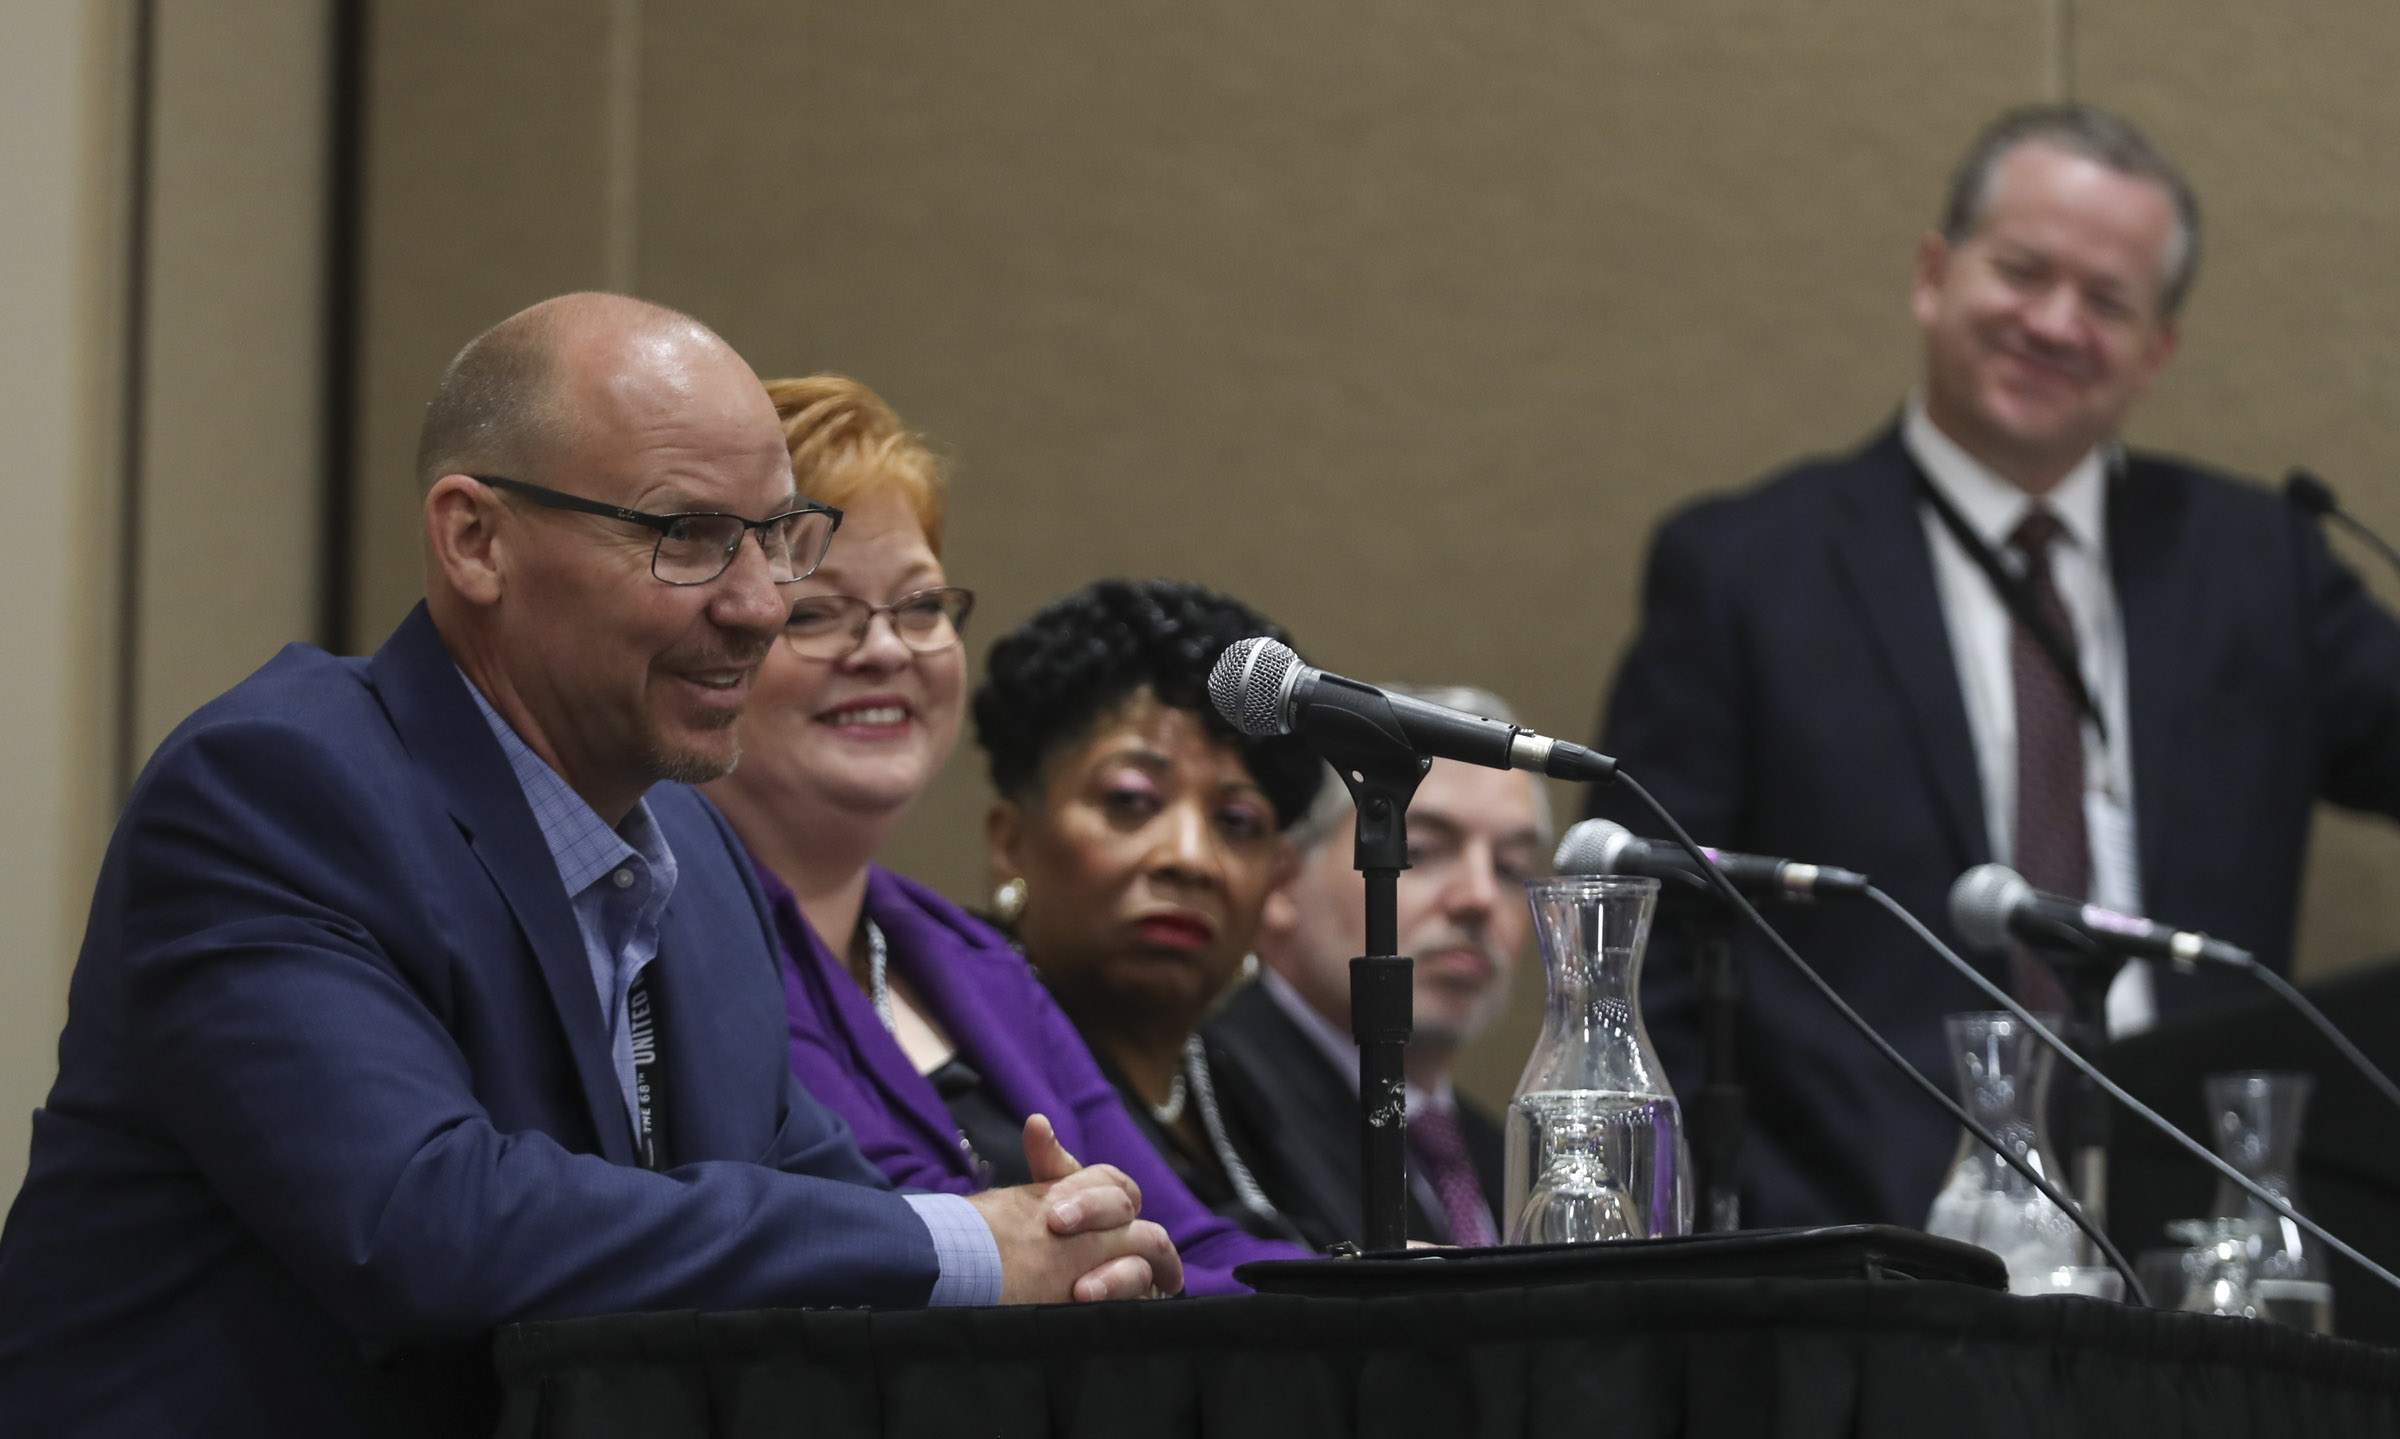 Chris Nelson, manager of The Other Side Academy, left, Kimberly Ishoy, with The Church of Jesus Christ of Latter-day Saints' planning division of welfare and self-reliance services, Jeanetta Williams, president of the NAACP's Salt Lake branch, Scott Winship, executive director of the Joint Economic Committee, and moderator Boyd Matheson, opinion editor for the Deseret News, take park in the Interfaith Dialogue at the 68th United Nations Civil Society Conference at the Salt Palace Convention Center in Salt Lake City on Tuesday, Aug. 27, 2019.